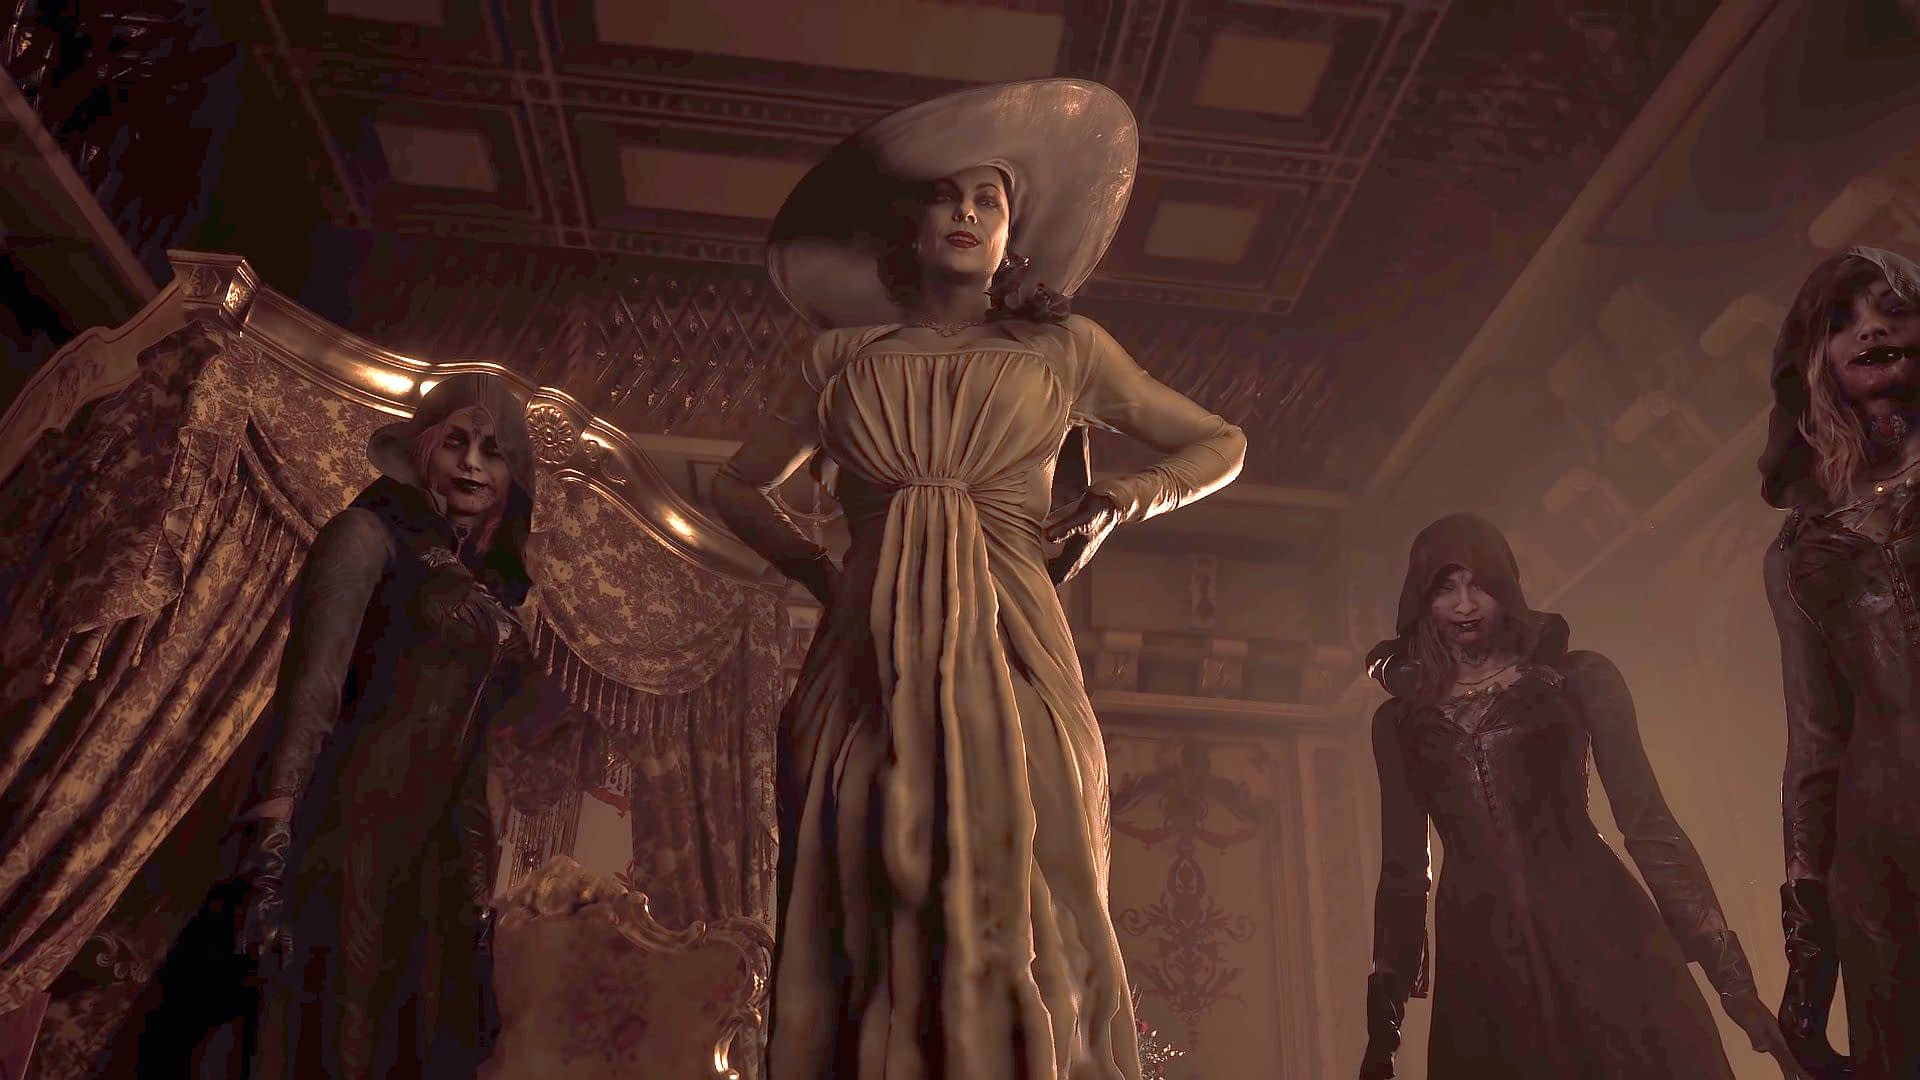 Resident Evil Showcase: What We Know About Village